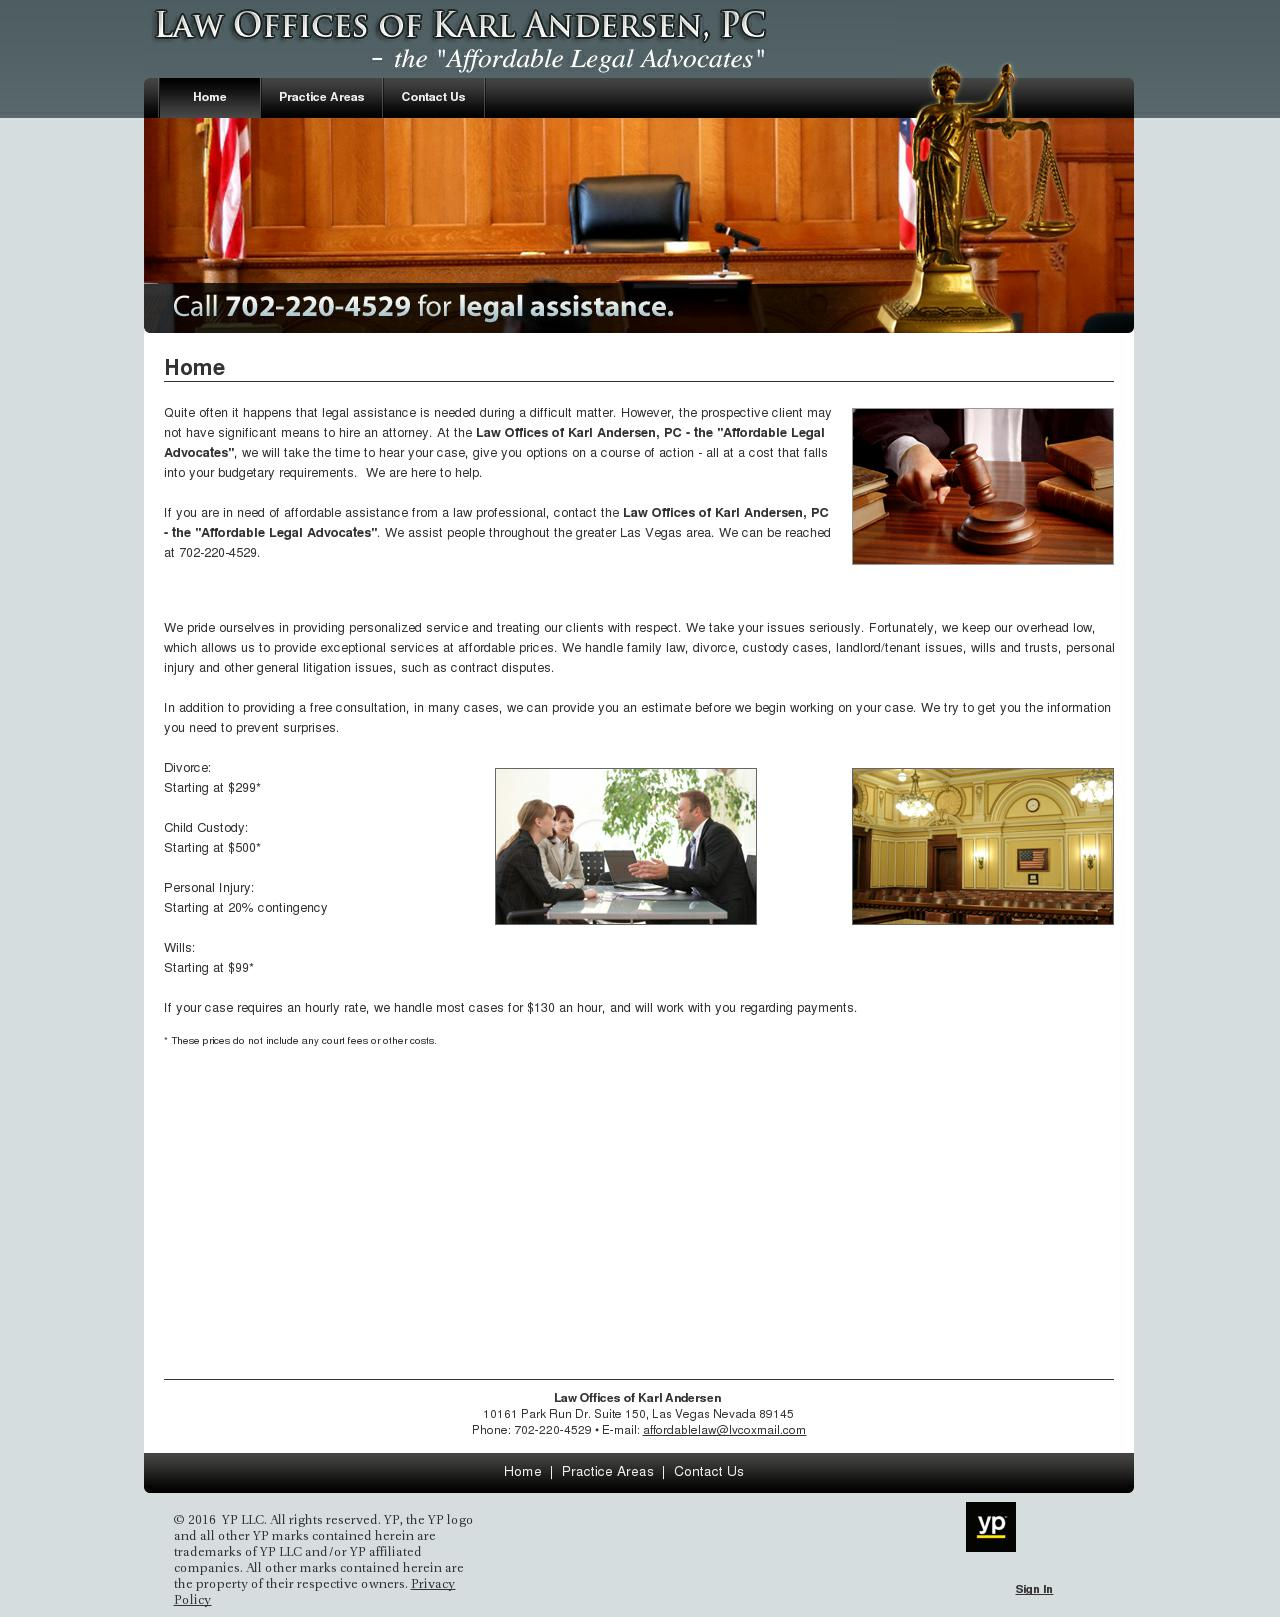 Affordable Legal Advocates - Las Vegas NV Lawyers